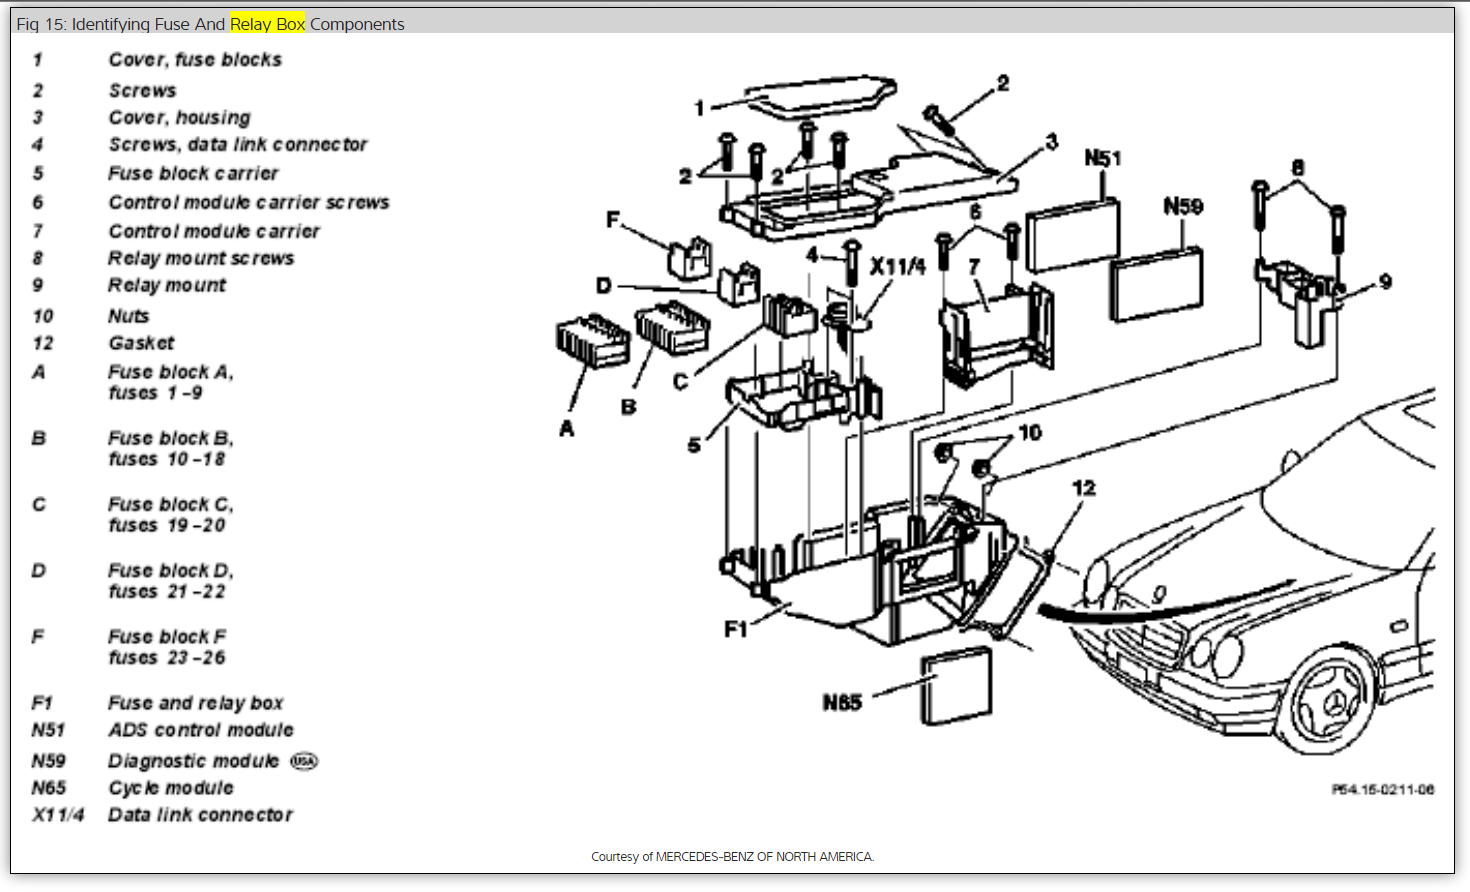 Mercedes Benz Car Manuals Wiring Diagrams Pdf Fault Codes